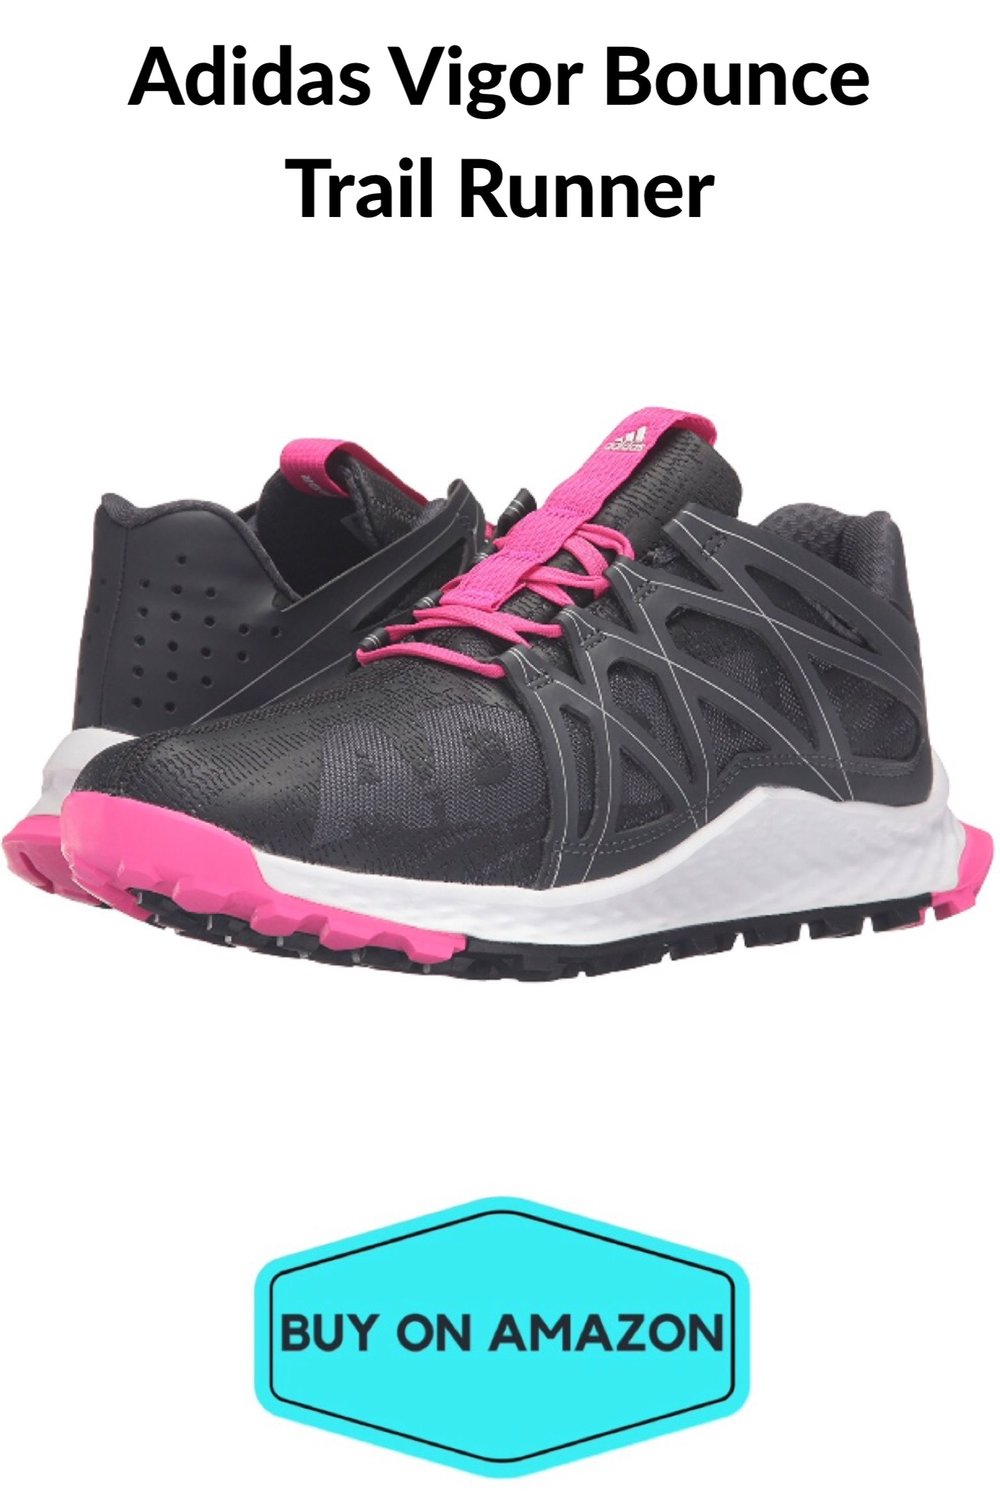 Adidas Vigor Bounce Women's Trail Runner